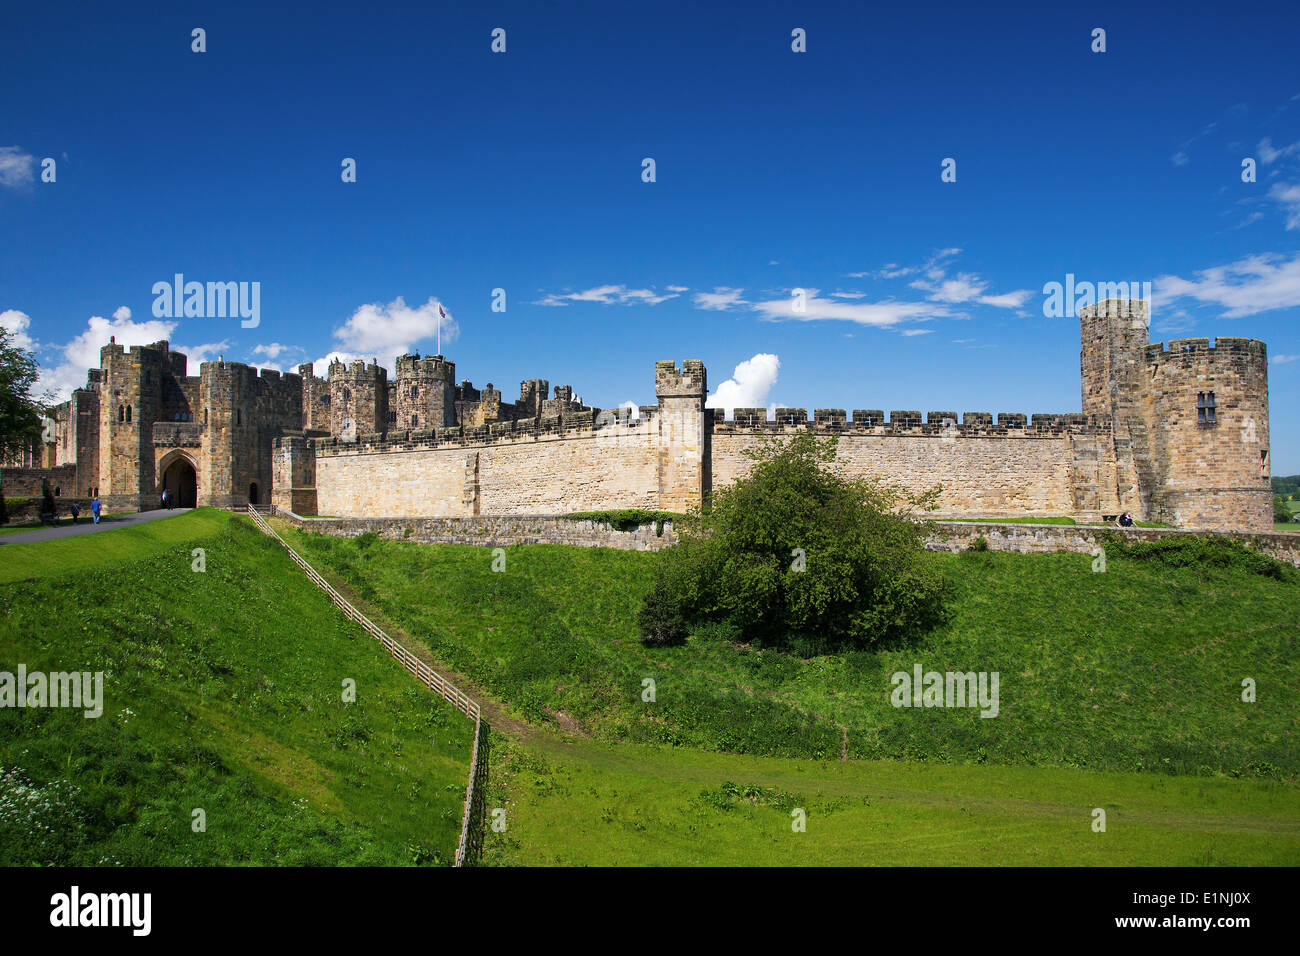 Alnwick Castle, Northumberland, where Harry Potter was filmed. - Stock Image